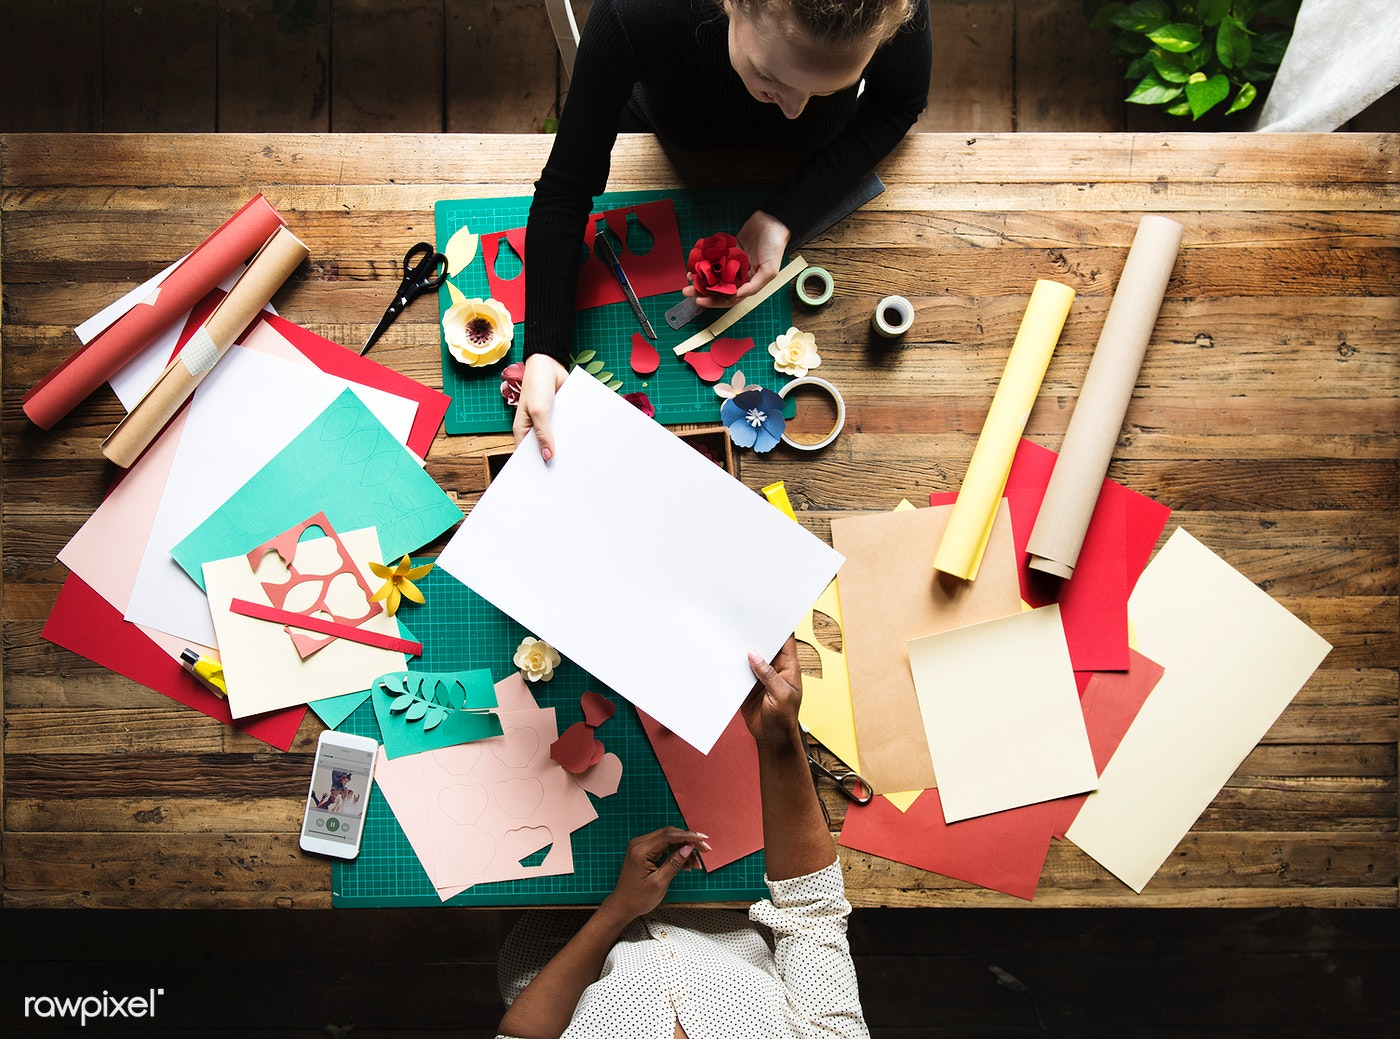 Download Premium Photo Of Aerial View Of Messy Paper Craft Work Table